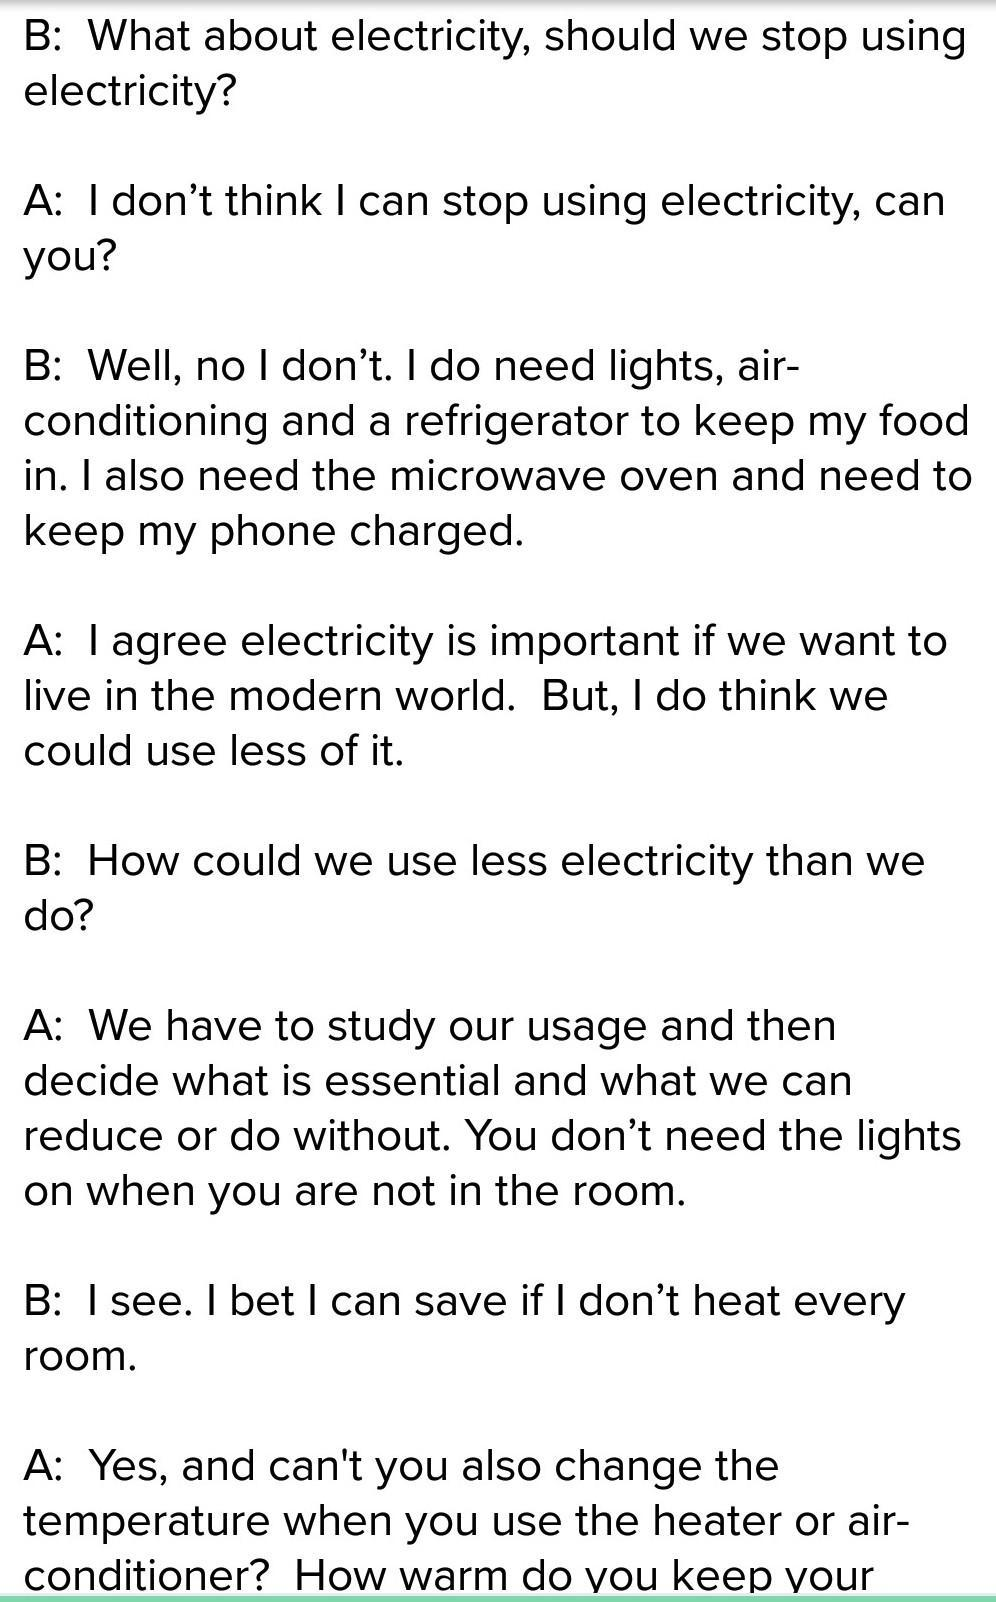 write a dialogue between two friends on frequent power failure